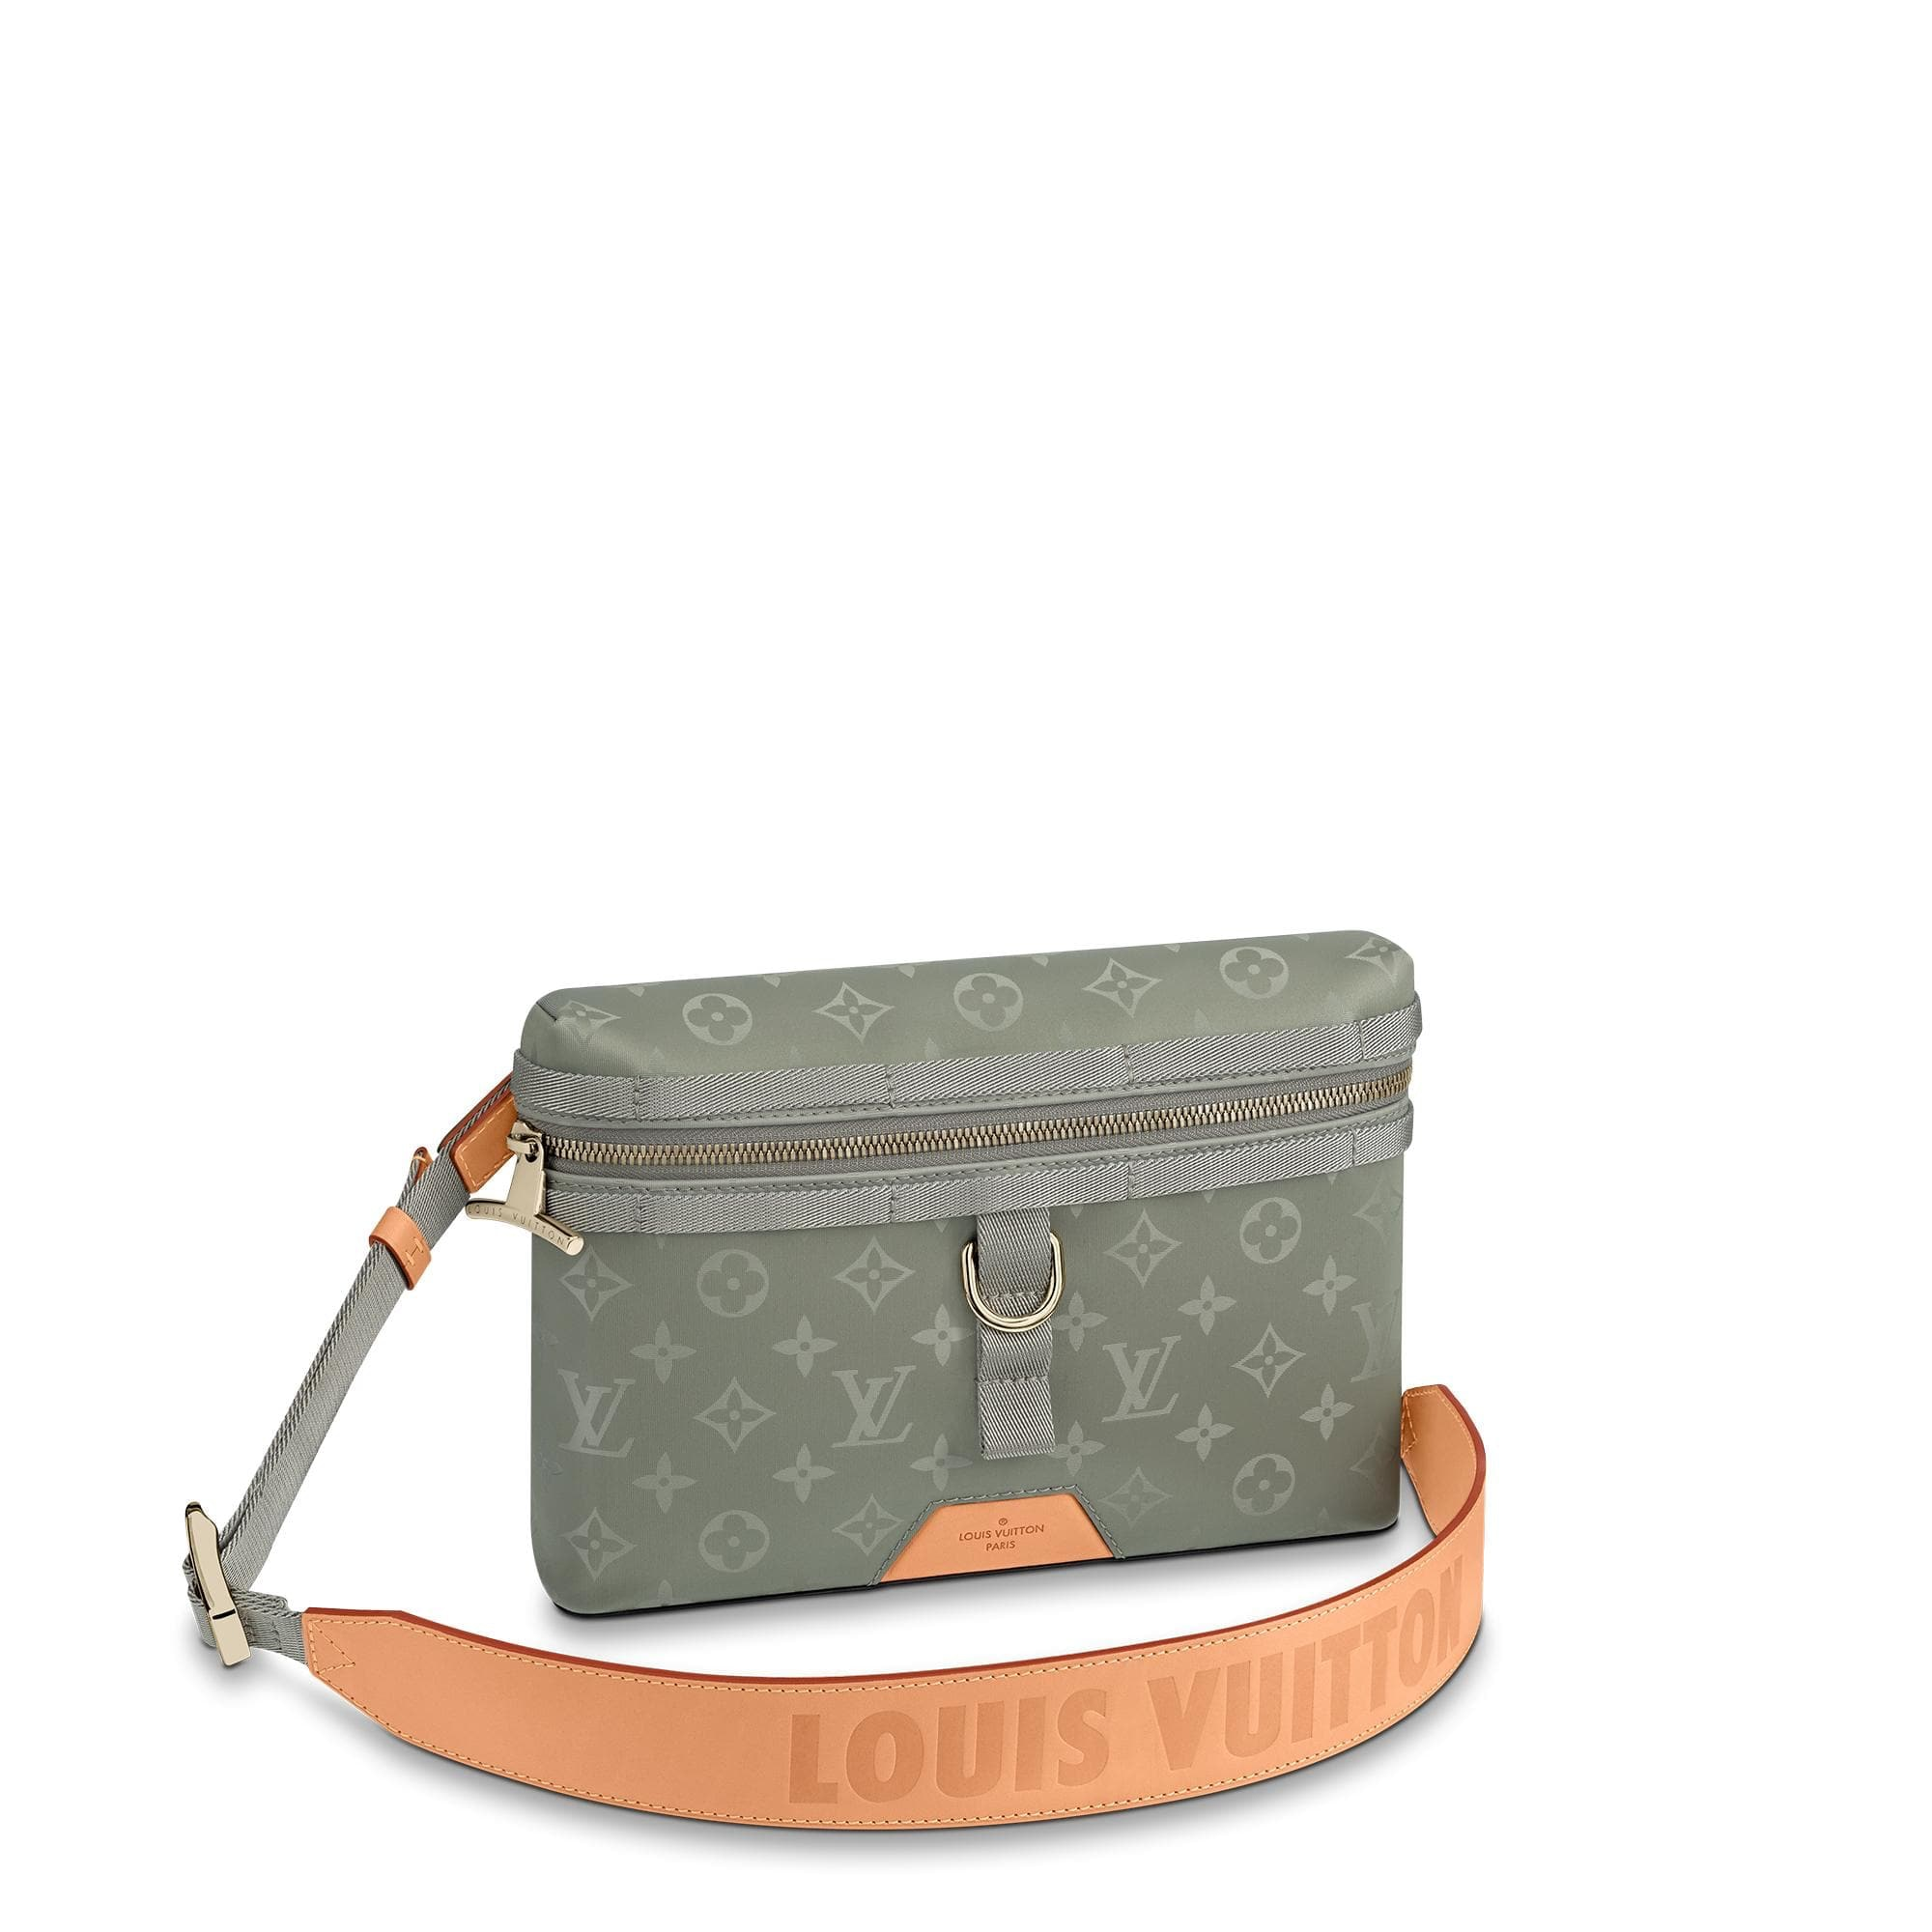 Louis Vuitton Messenger Monogram PM Titanium